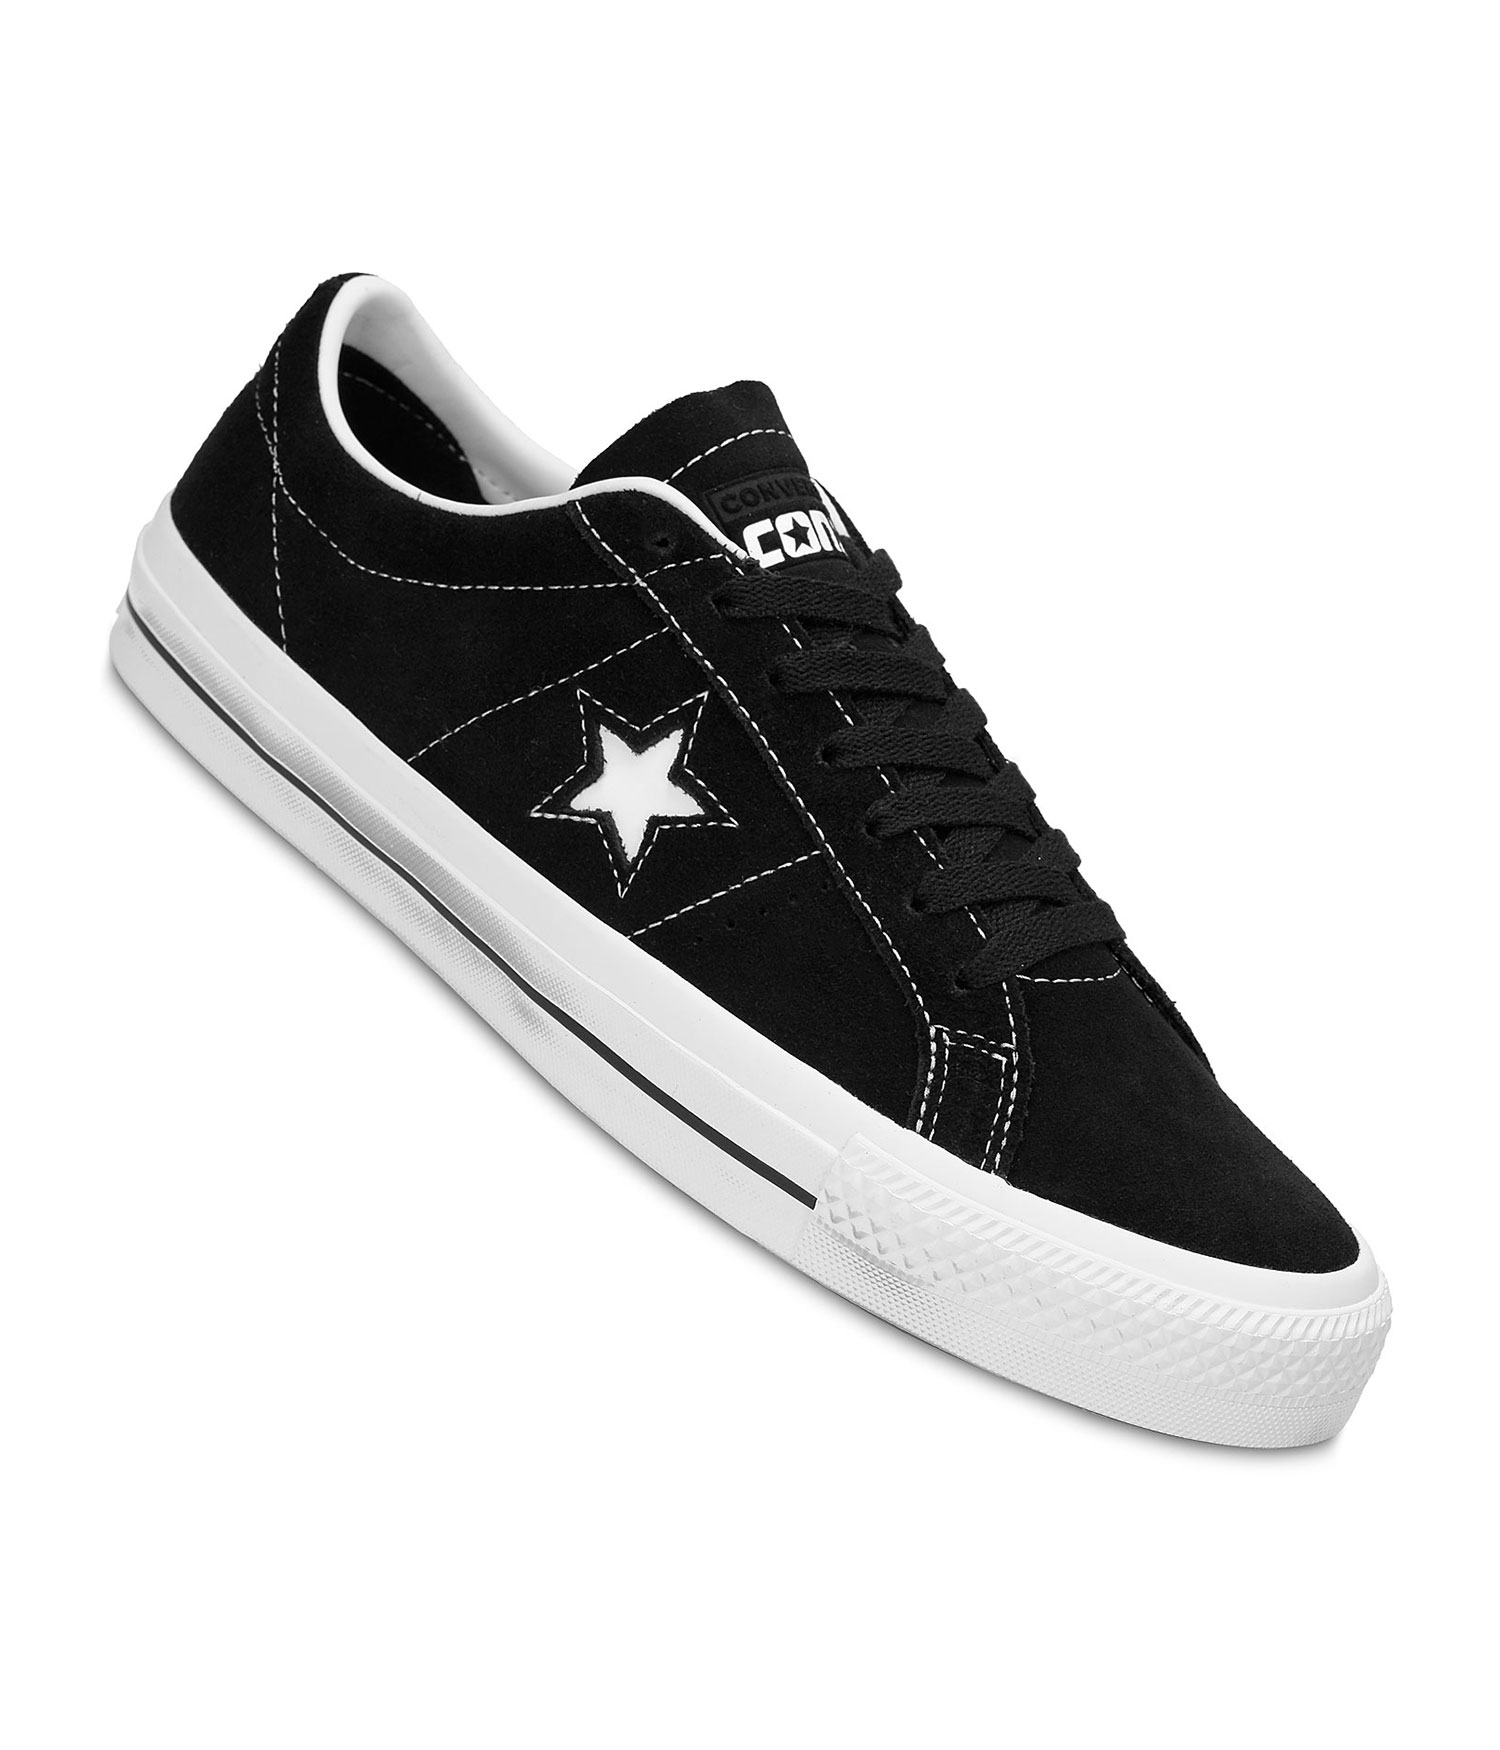 da7d408600e8 converse cons one star